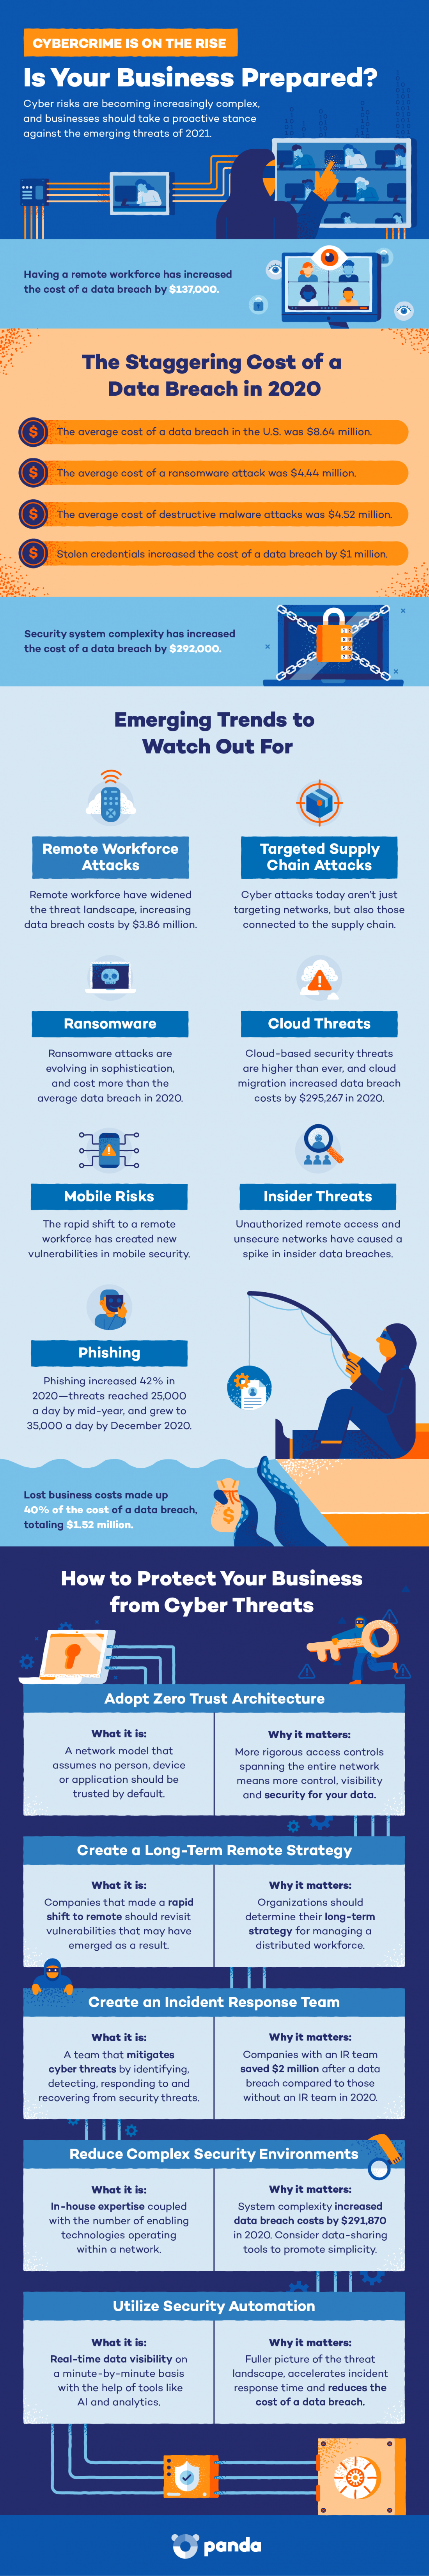 cybersecurity-trends